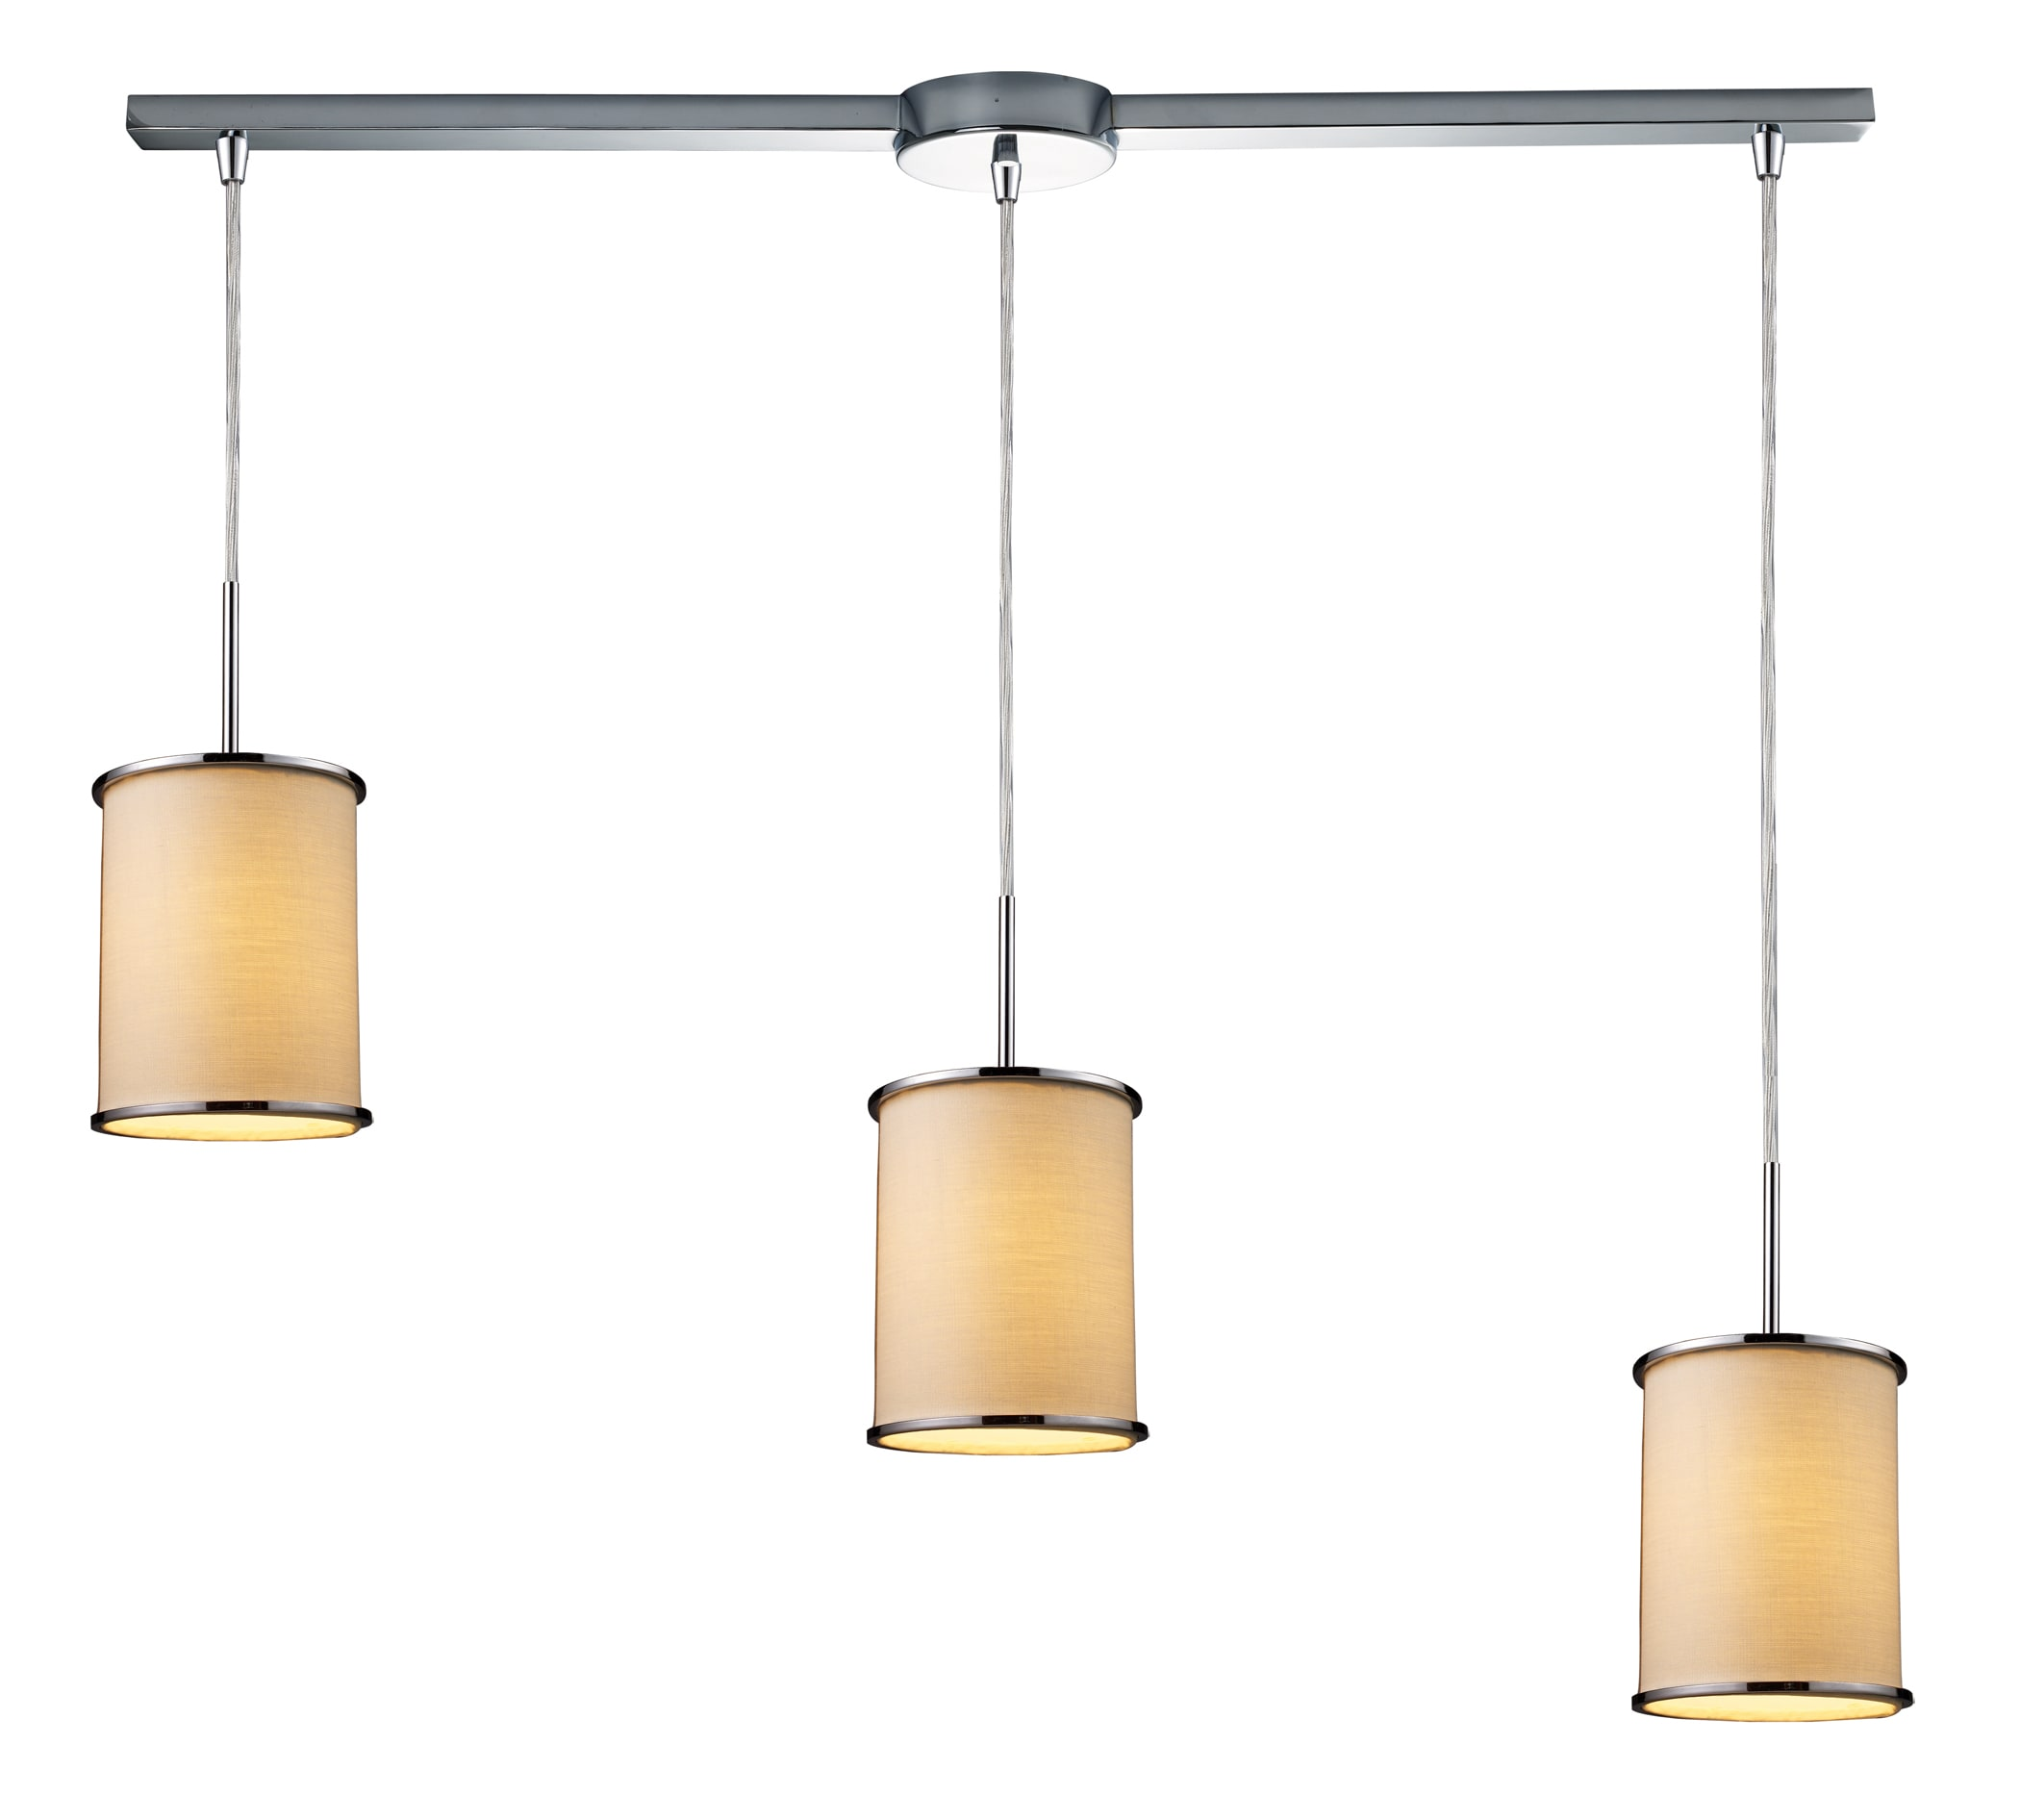 Elk Lighting 20055/3L Polished Chrome Fabrique 3 Light Linear Pendant Ceiling Fixture from the Fabrique Collection 20055/3L